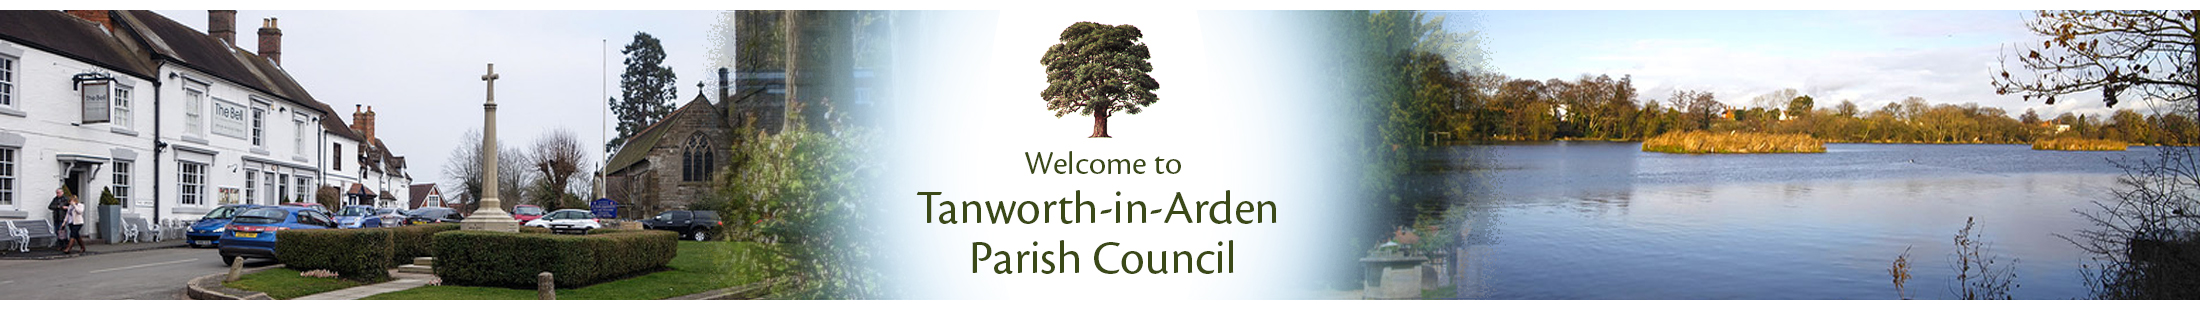 Header Image for Tanworth-in-Arden Parish Council